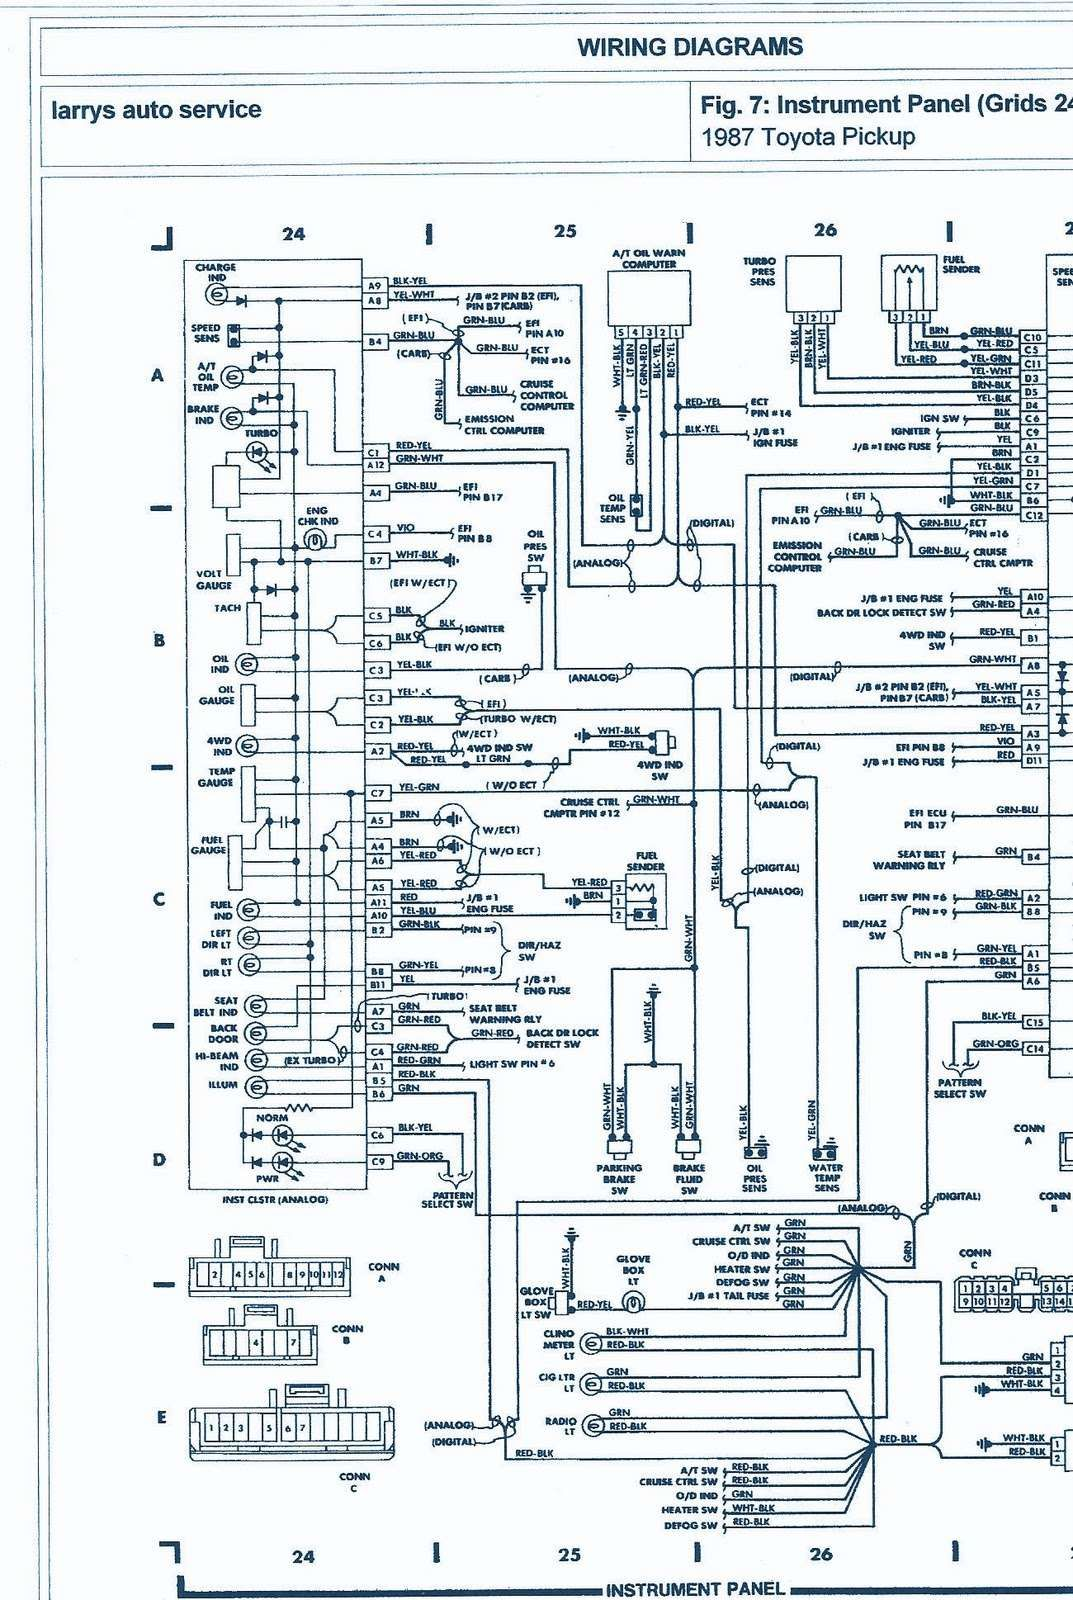 Wiring Diagram Electrical Wiring Diagram Electrical Electrical Wiring Diagram Toyota Electrical Diagram